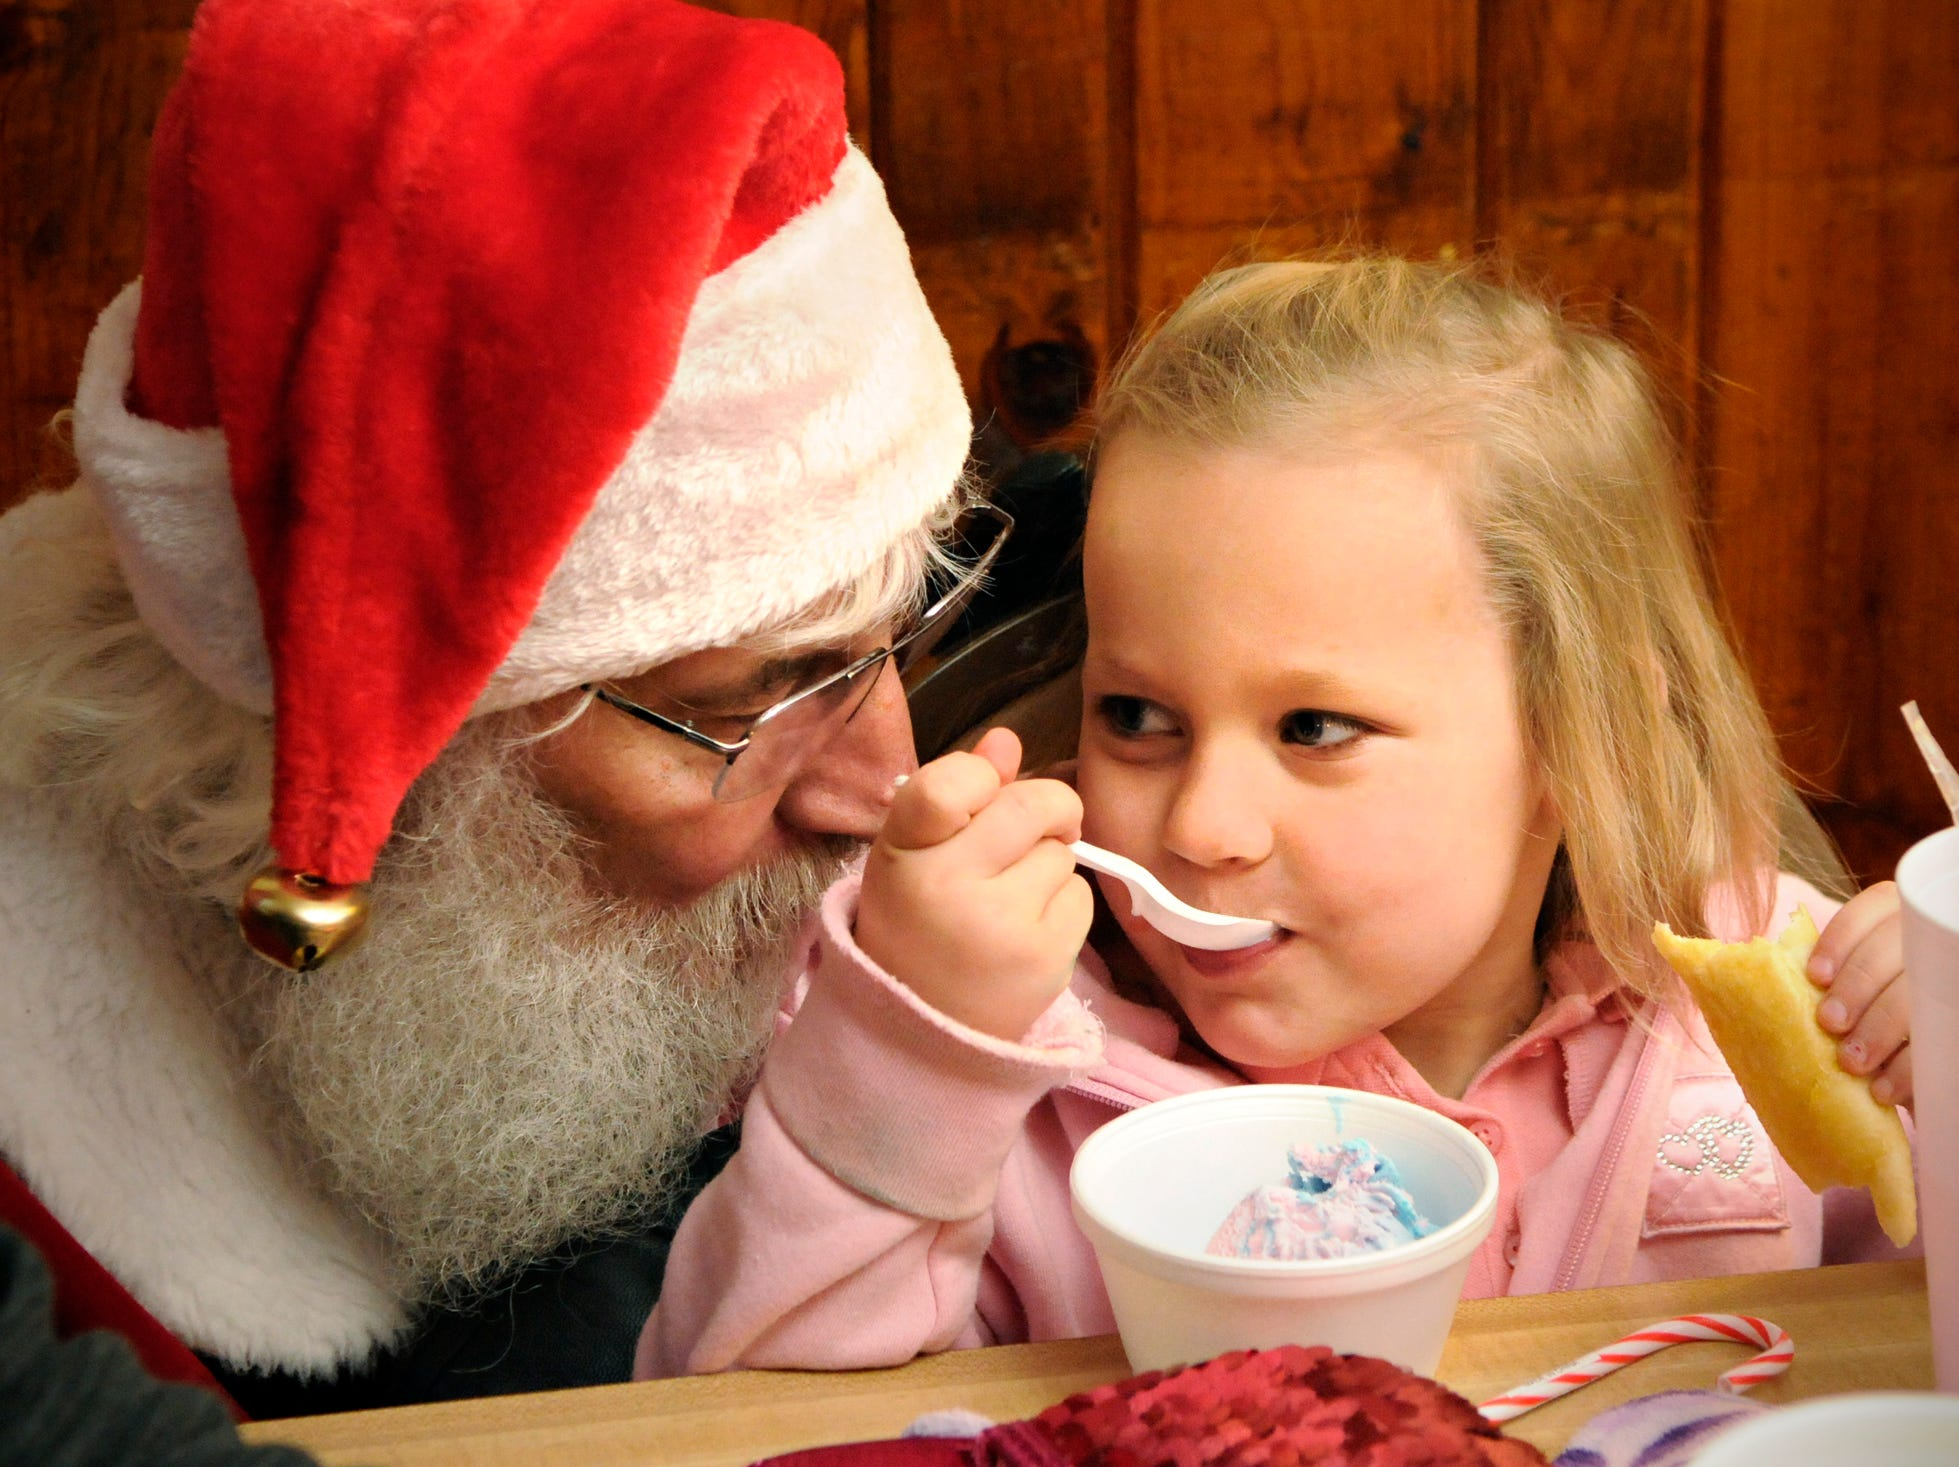 Lilly Prozinski, 4, Upasla, talks with Santa as she eats ice cream and nibbles a bread stick at Charlie's Pizza in Little Falls Tuesday, Dec. 25, 2012. Owner Charlie Peterka opened his restaurant and served free pizza to anyone who did not have holiday plans.